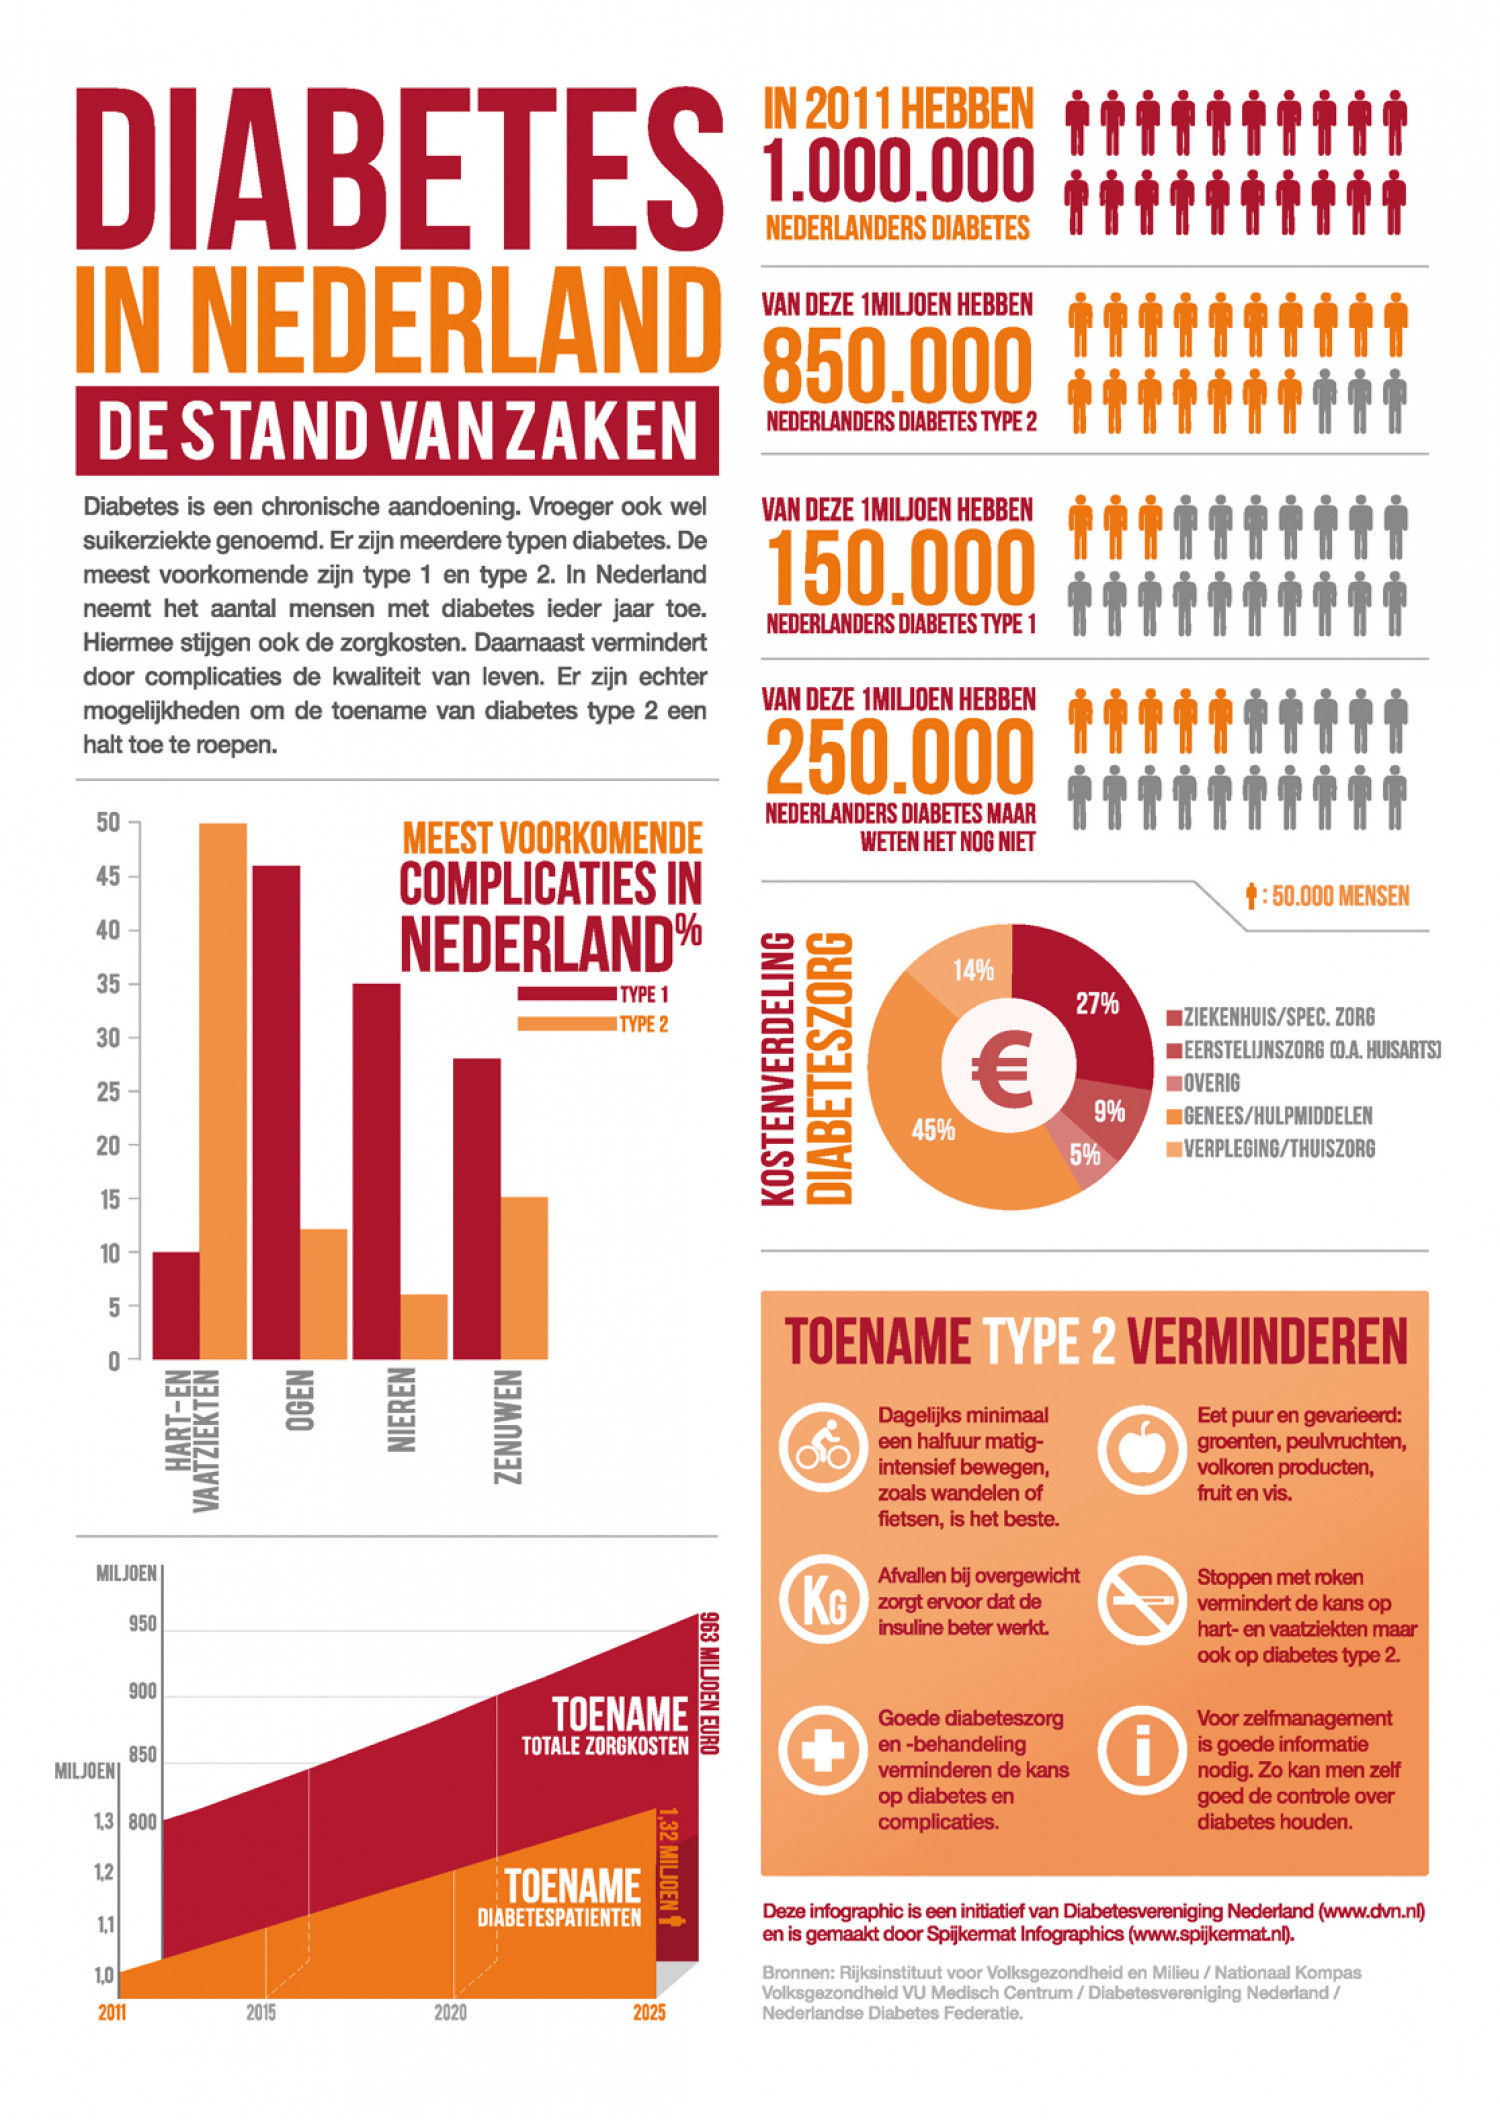 DIABETES IN THE NETHERLANDS Infographic